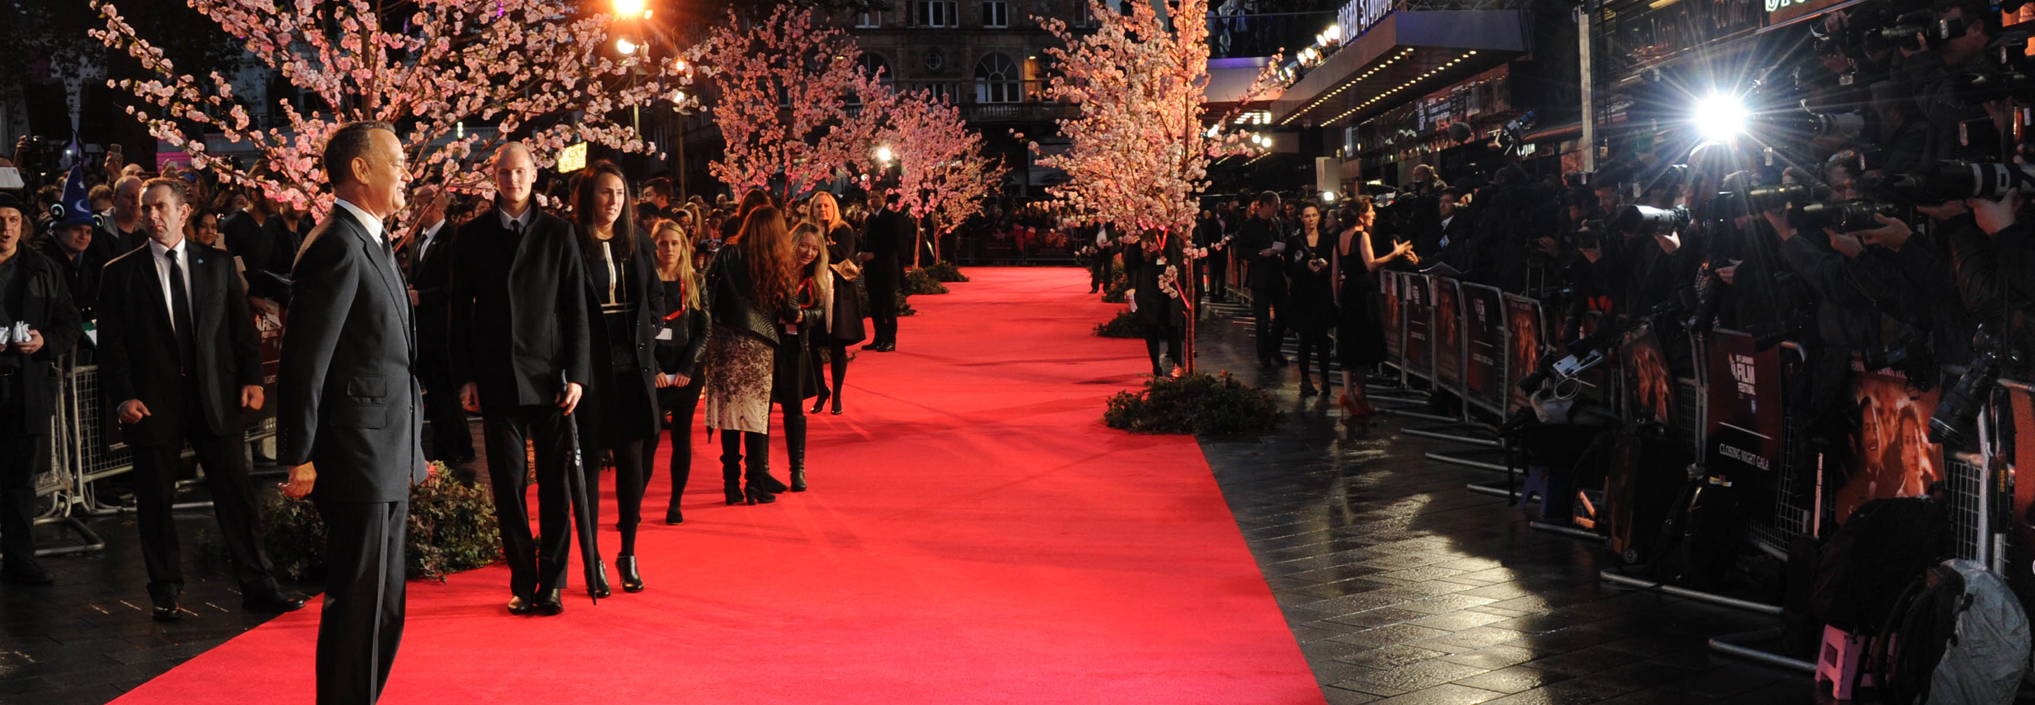 attend a gala at the london film festival with sincura tickets